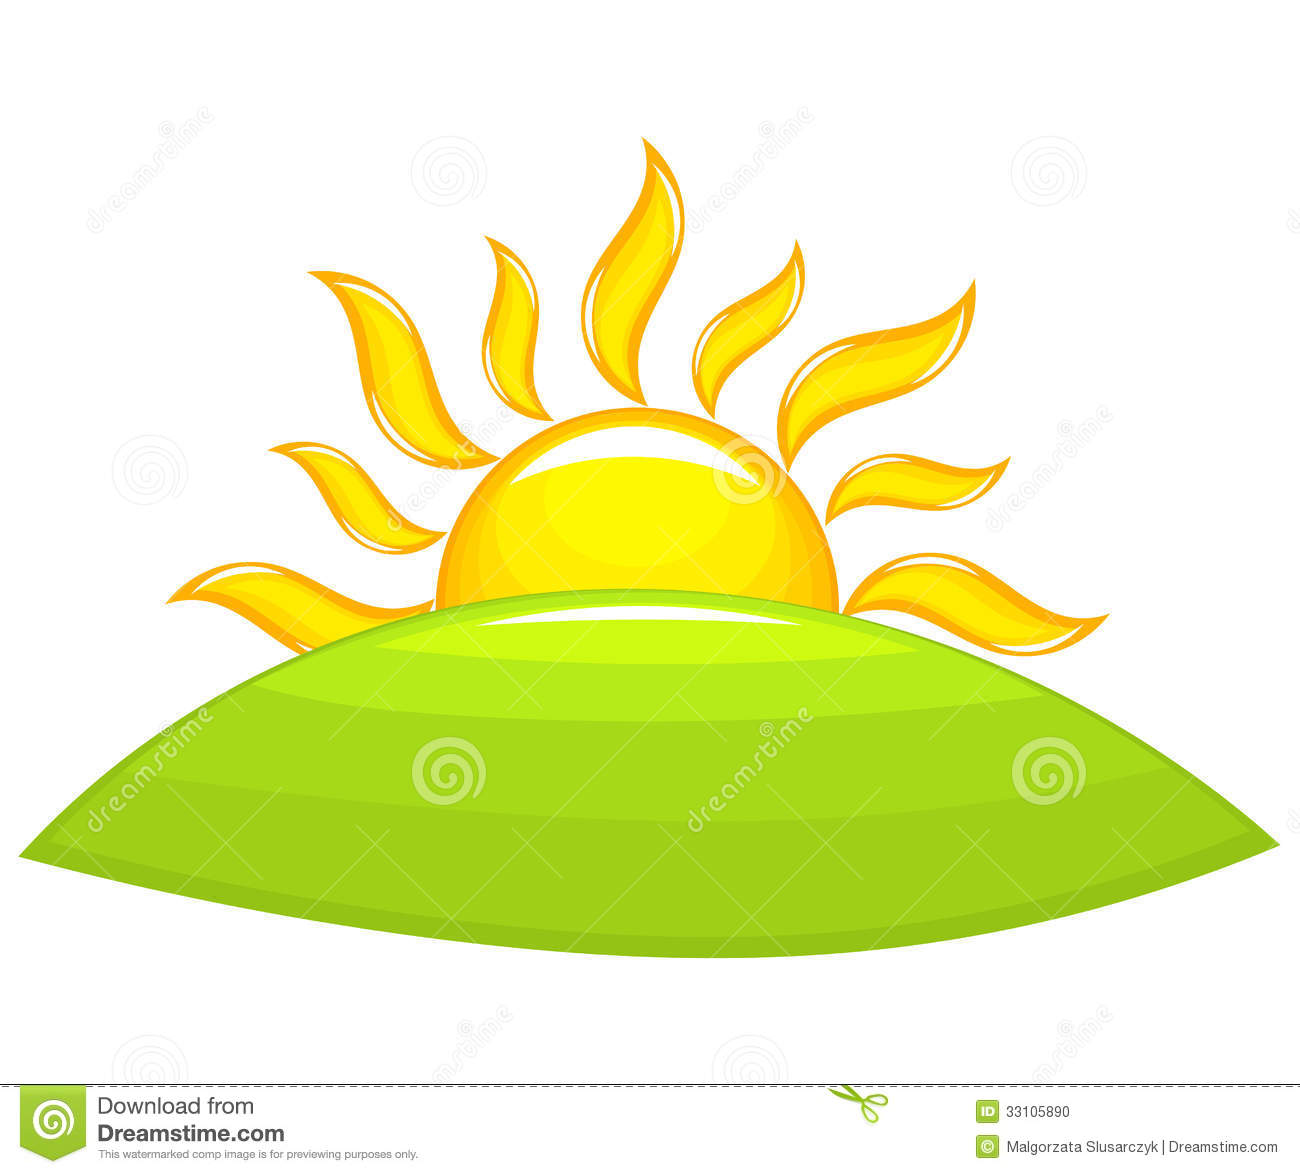 Sun rises clipart image black and white stock Sun rise clipart 2 » Clipart Station image black and white stock